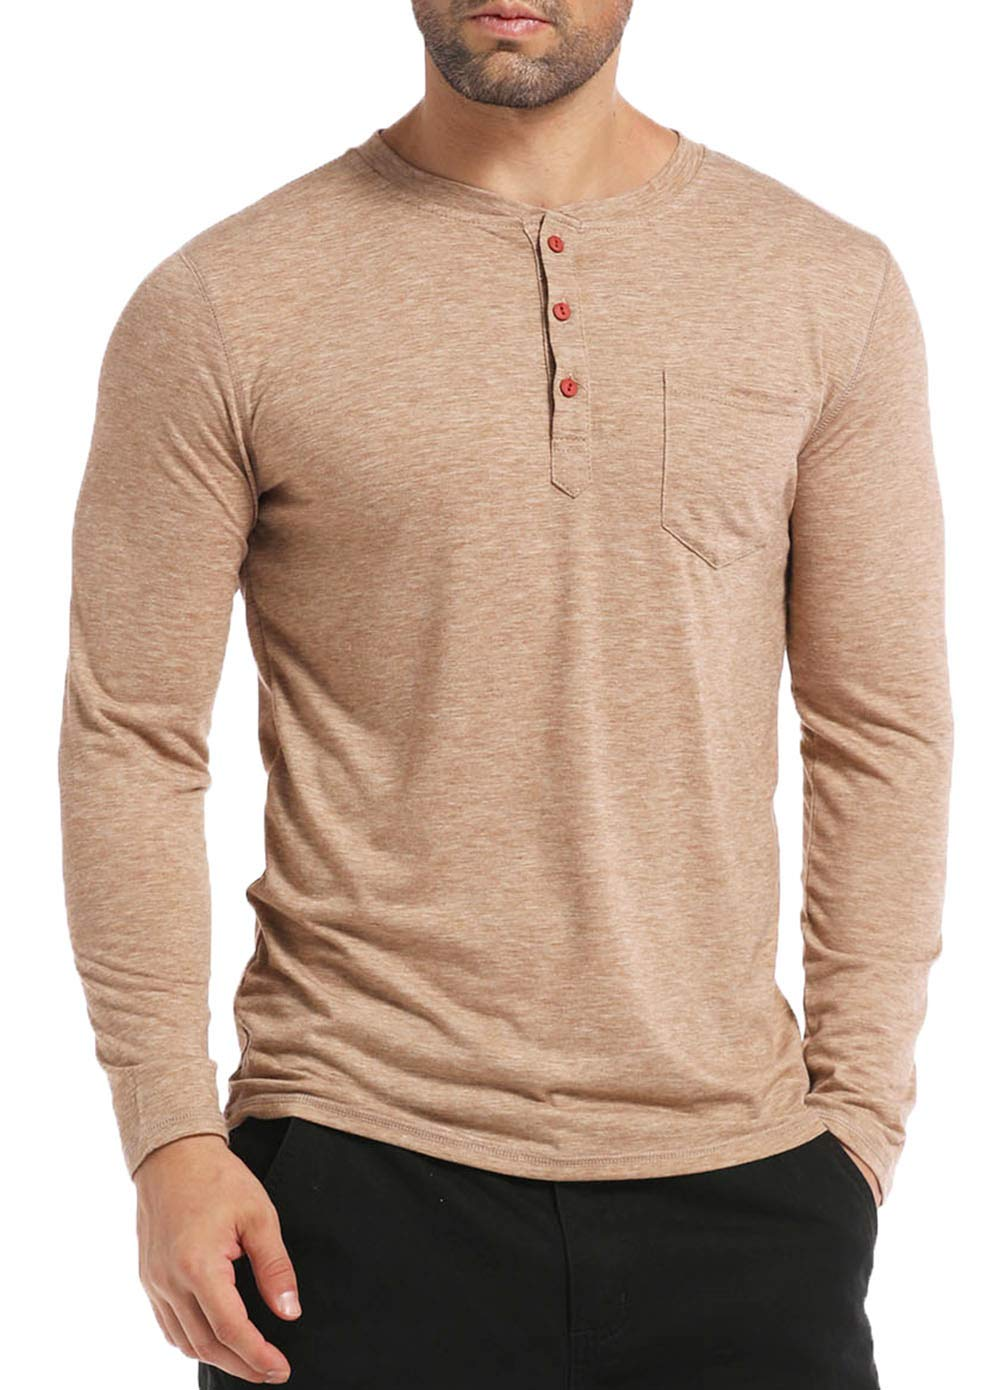 BABEIYXM Men's Henley Long Sleeve Shirts Soild Tee Shirts Front Pocket Tops Basic T-Shirts,Khaki,S